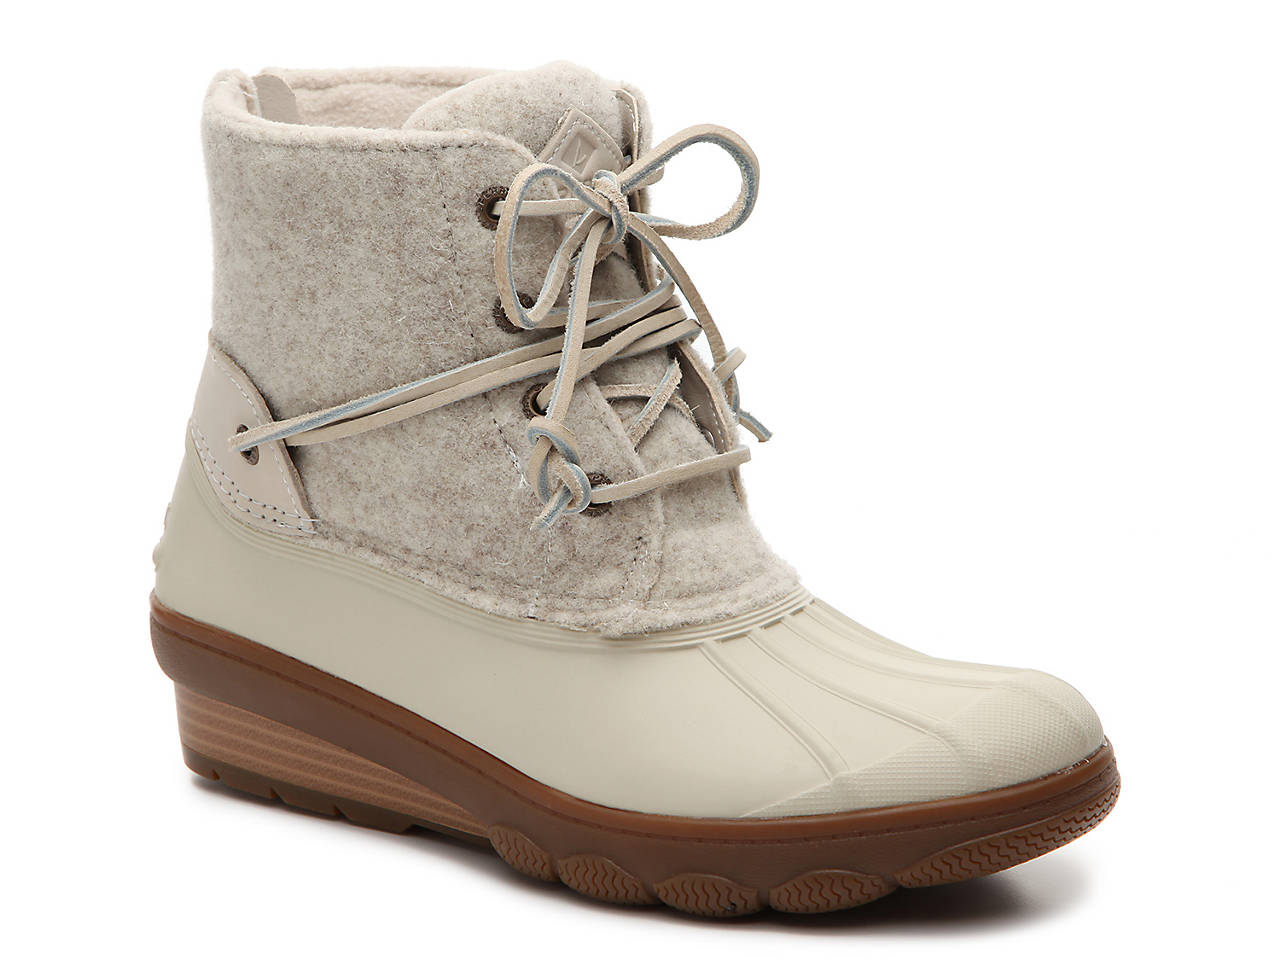 ef1a84dcd994 Sperry Top-Sider Saltwater Tide Wedge Duck Boot Women s Shoes